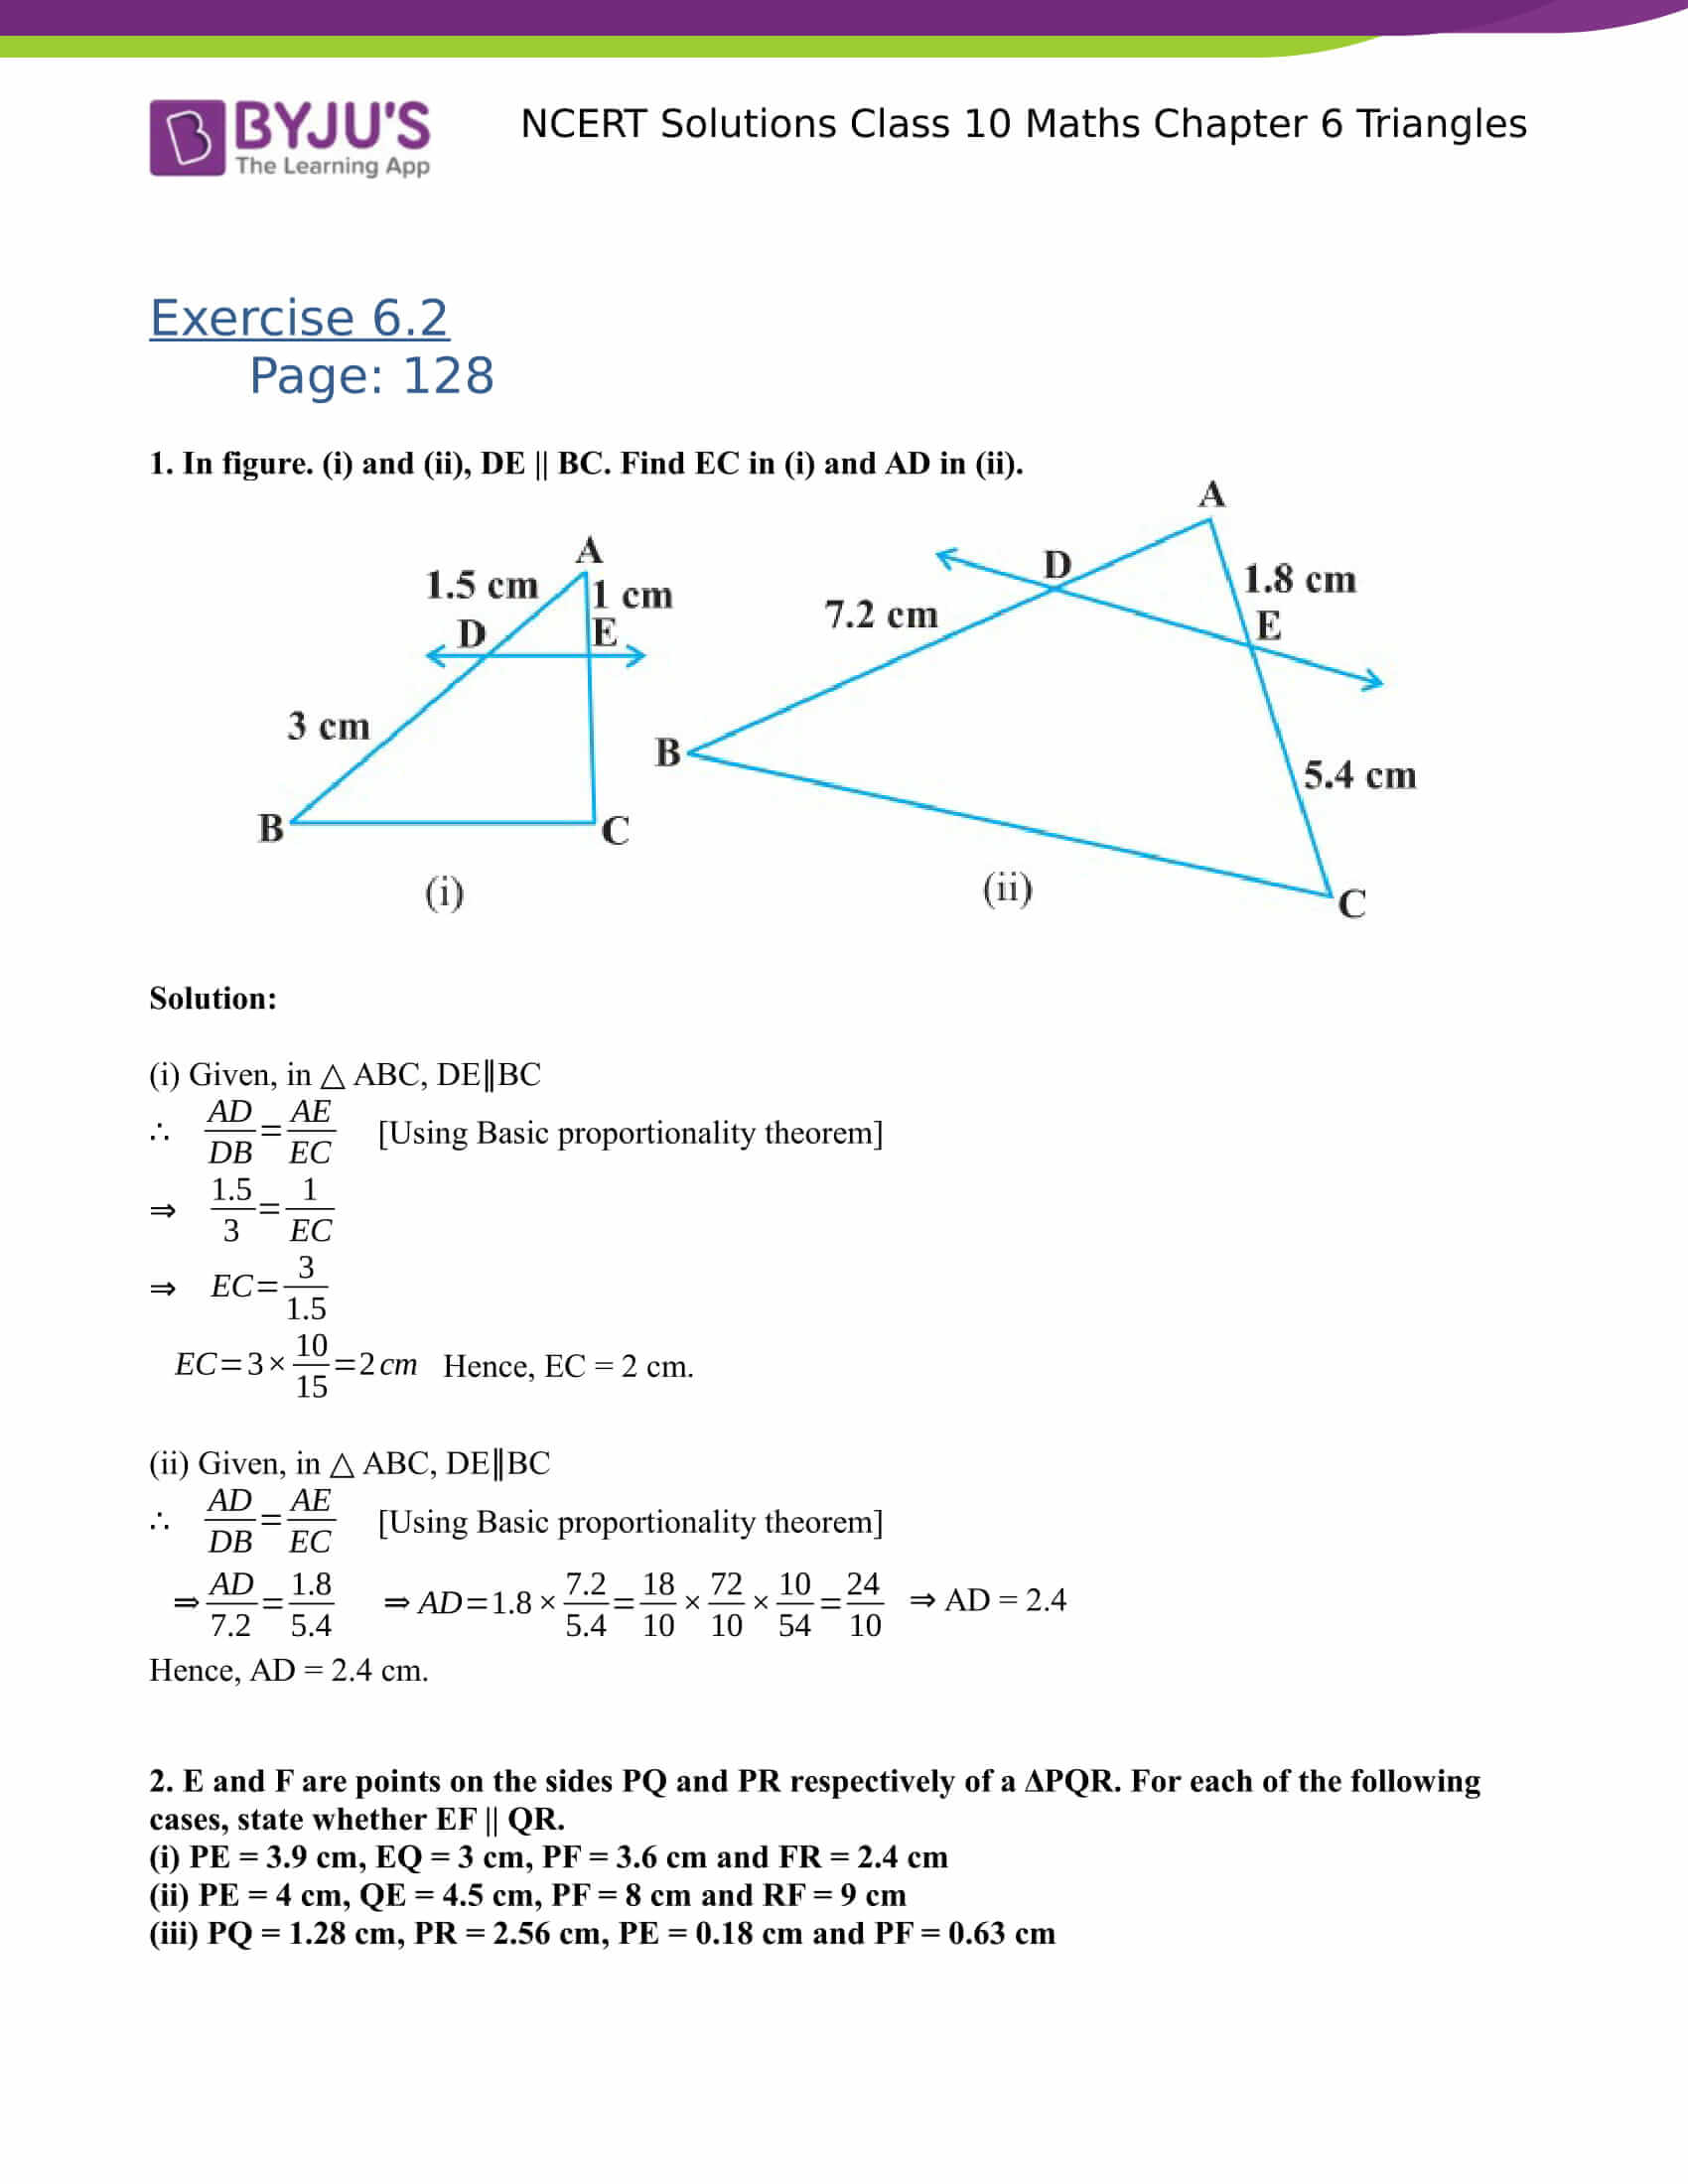 NCERT Solutions for class 10 Maths Chapter 6 Triangles Part 3